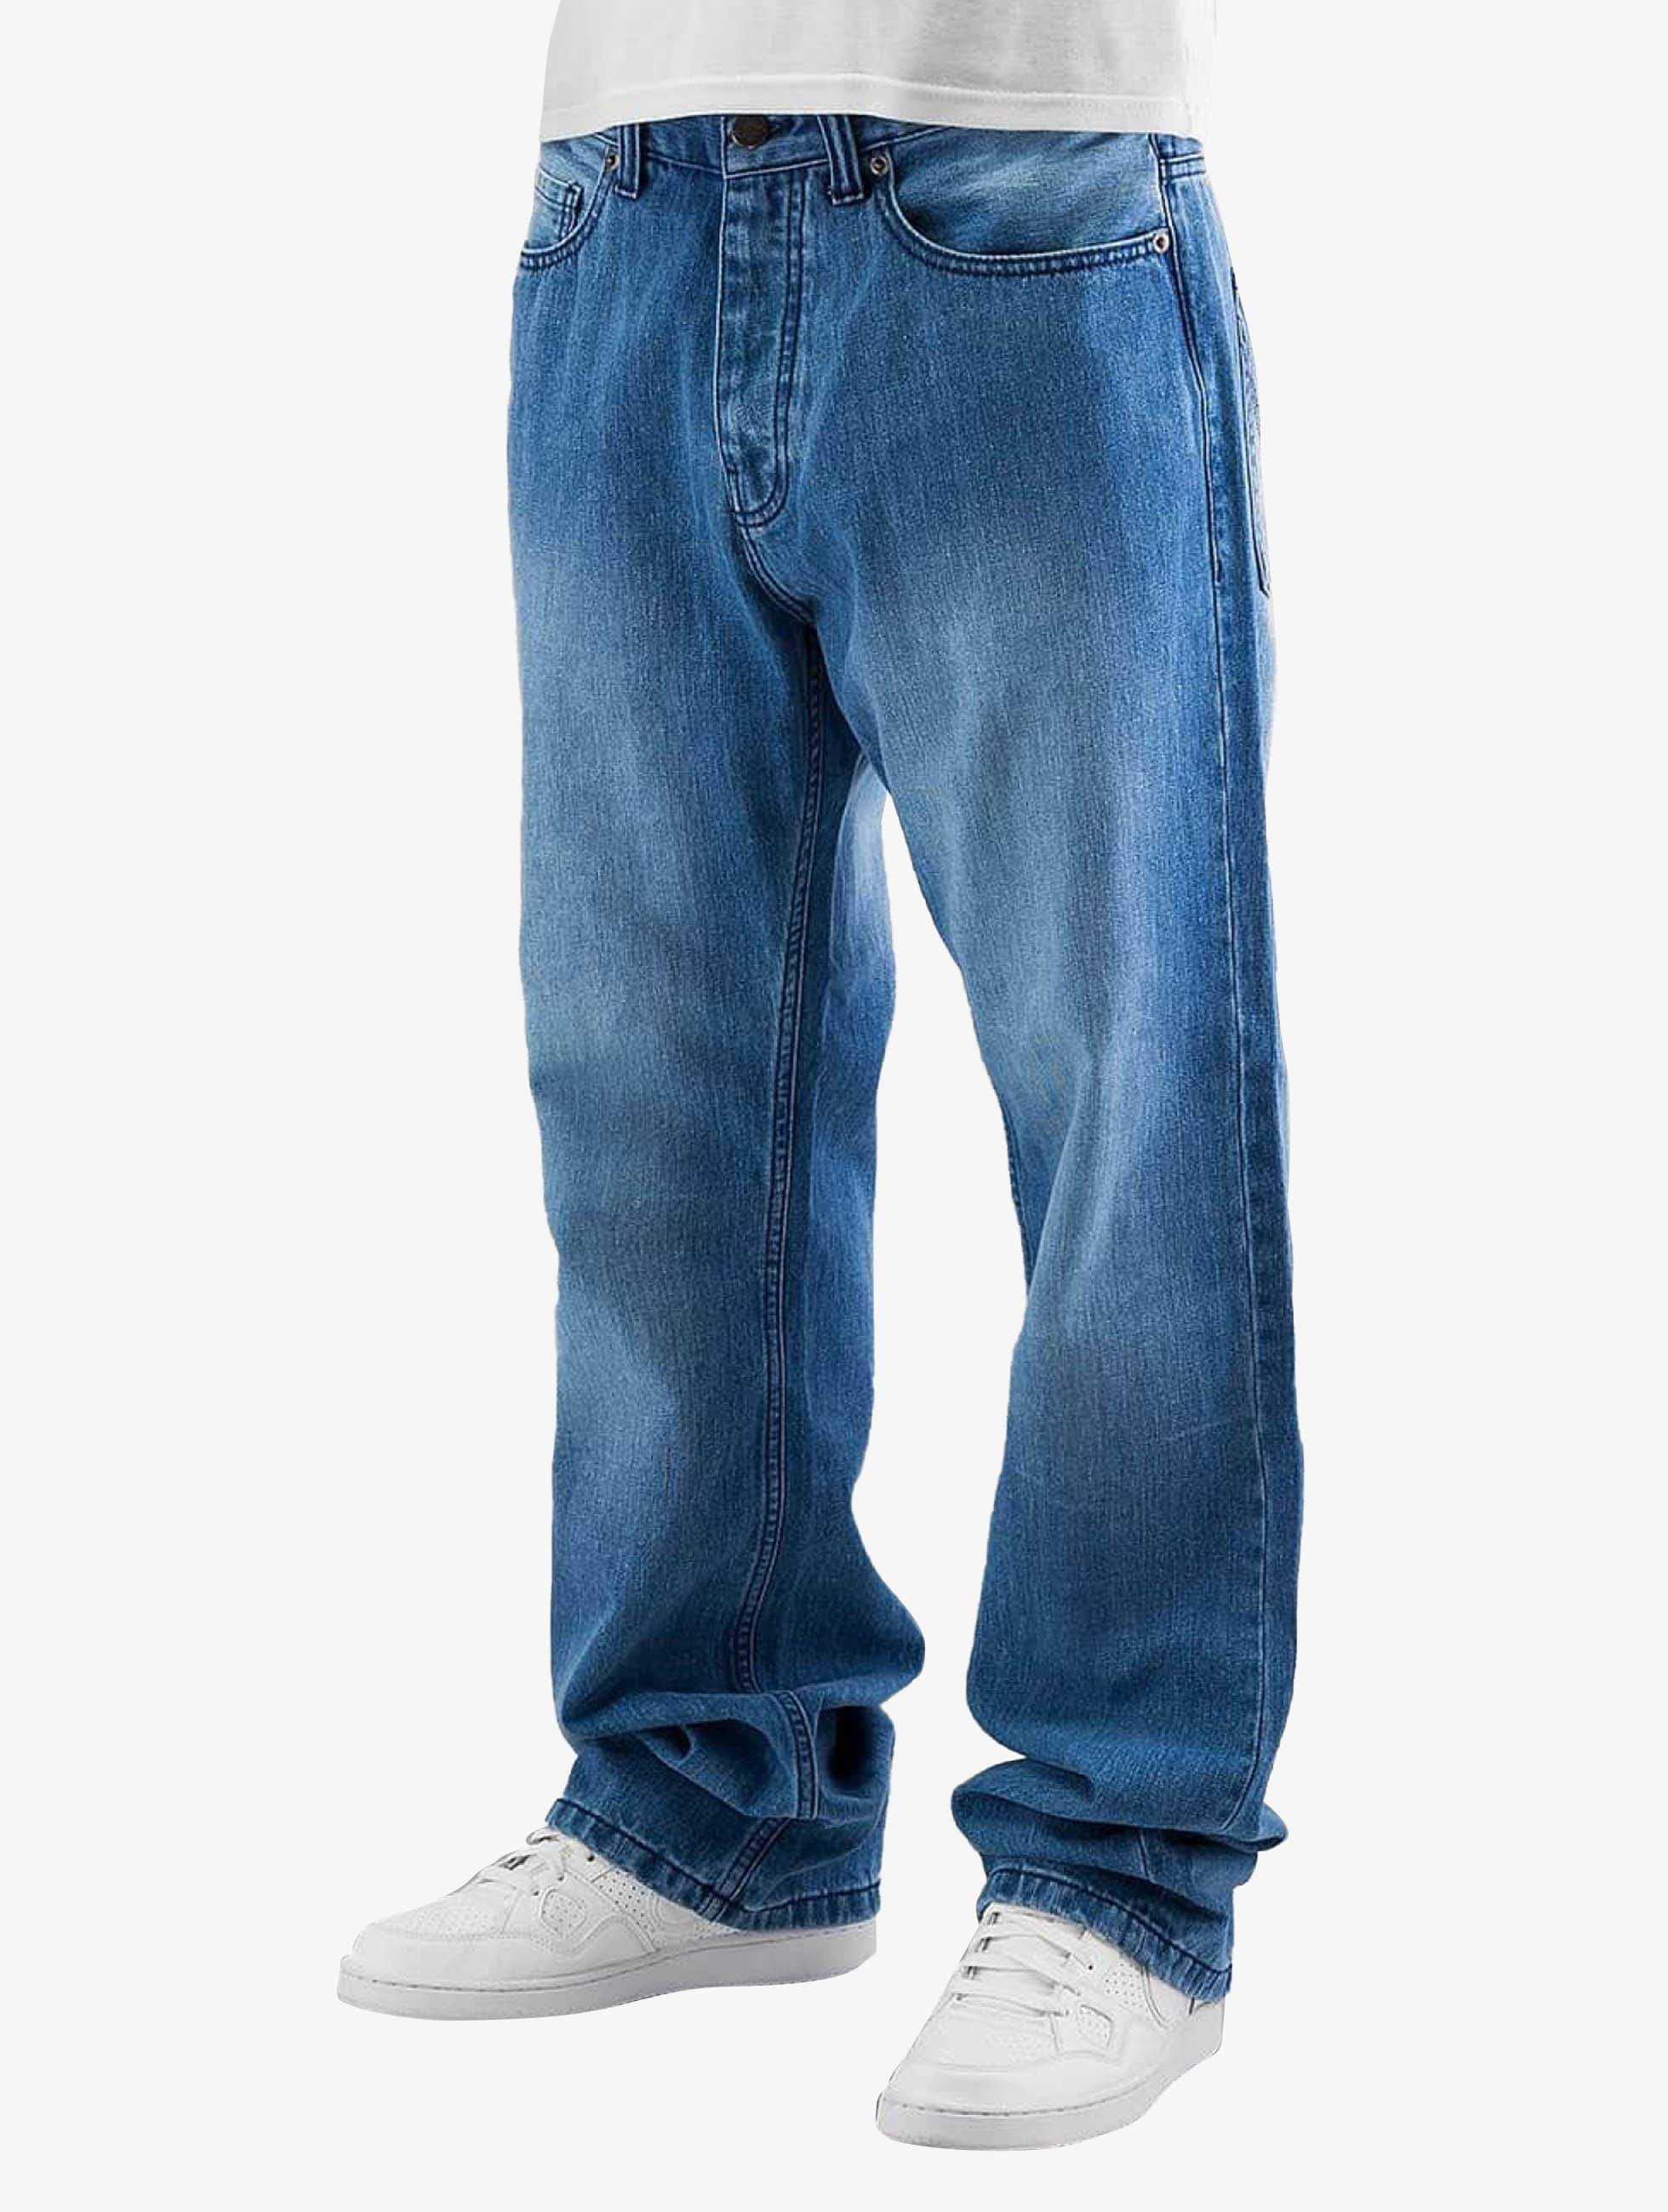 Dick jeans, big black butts nude